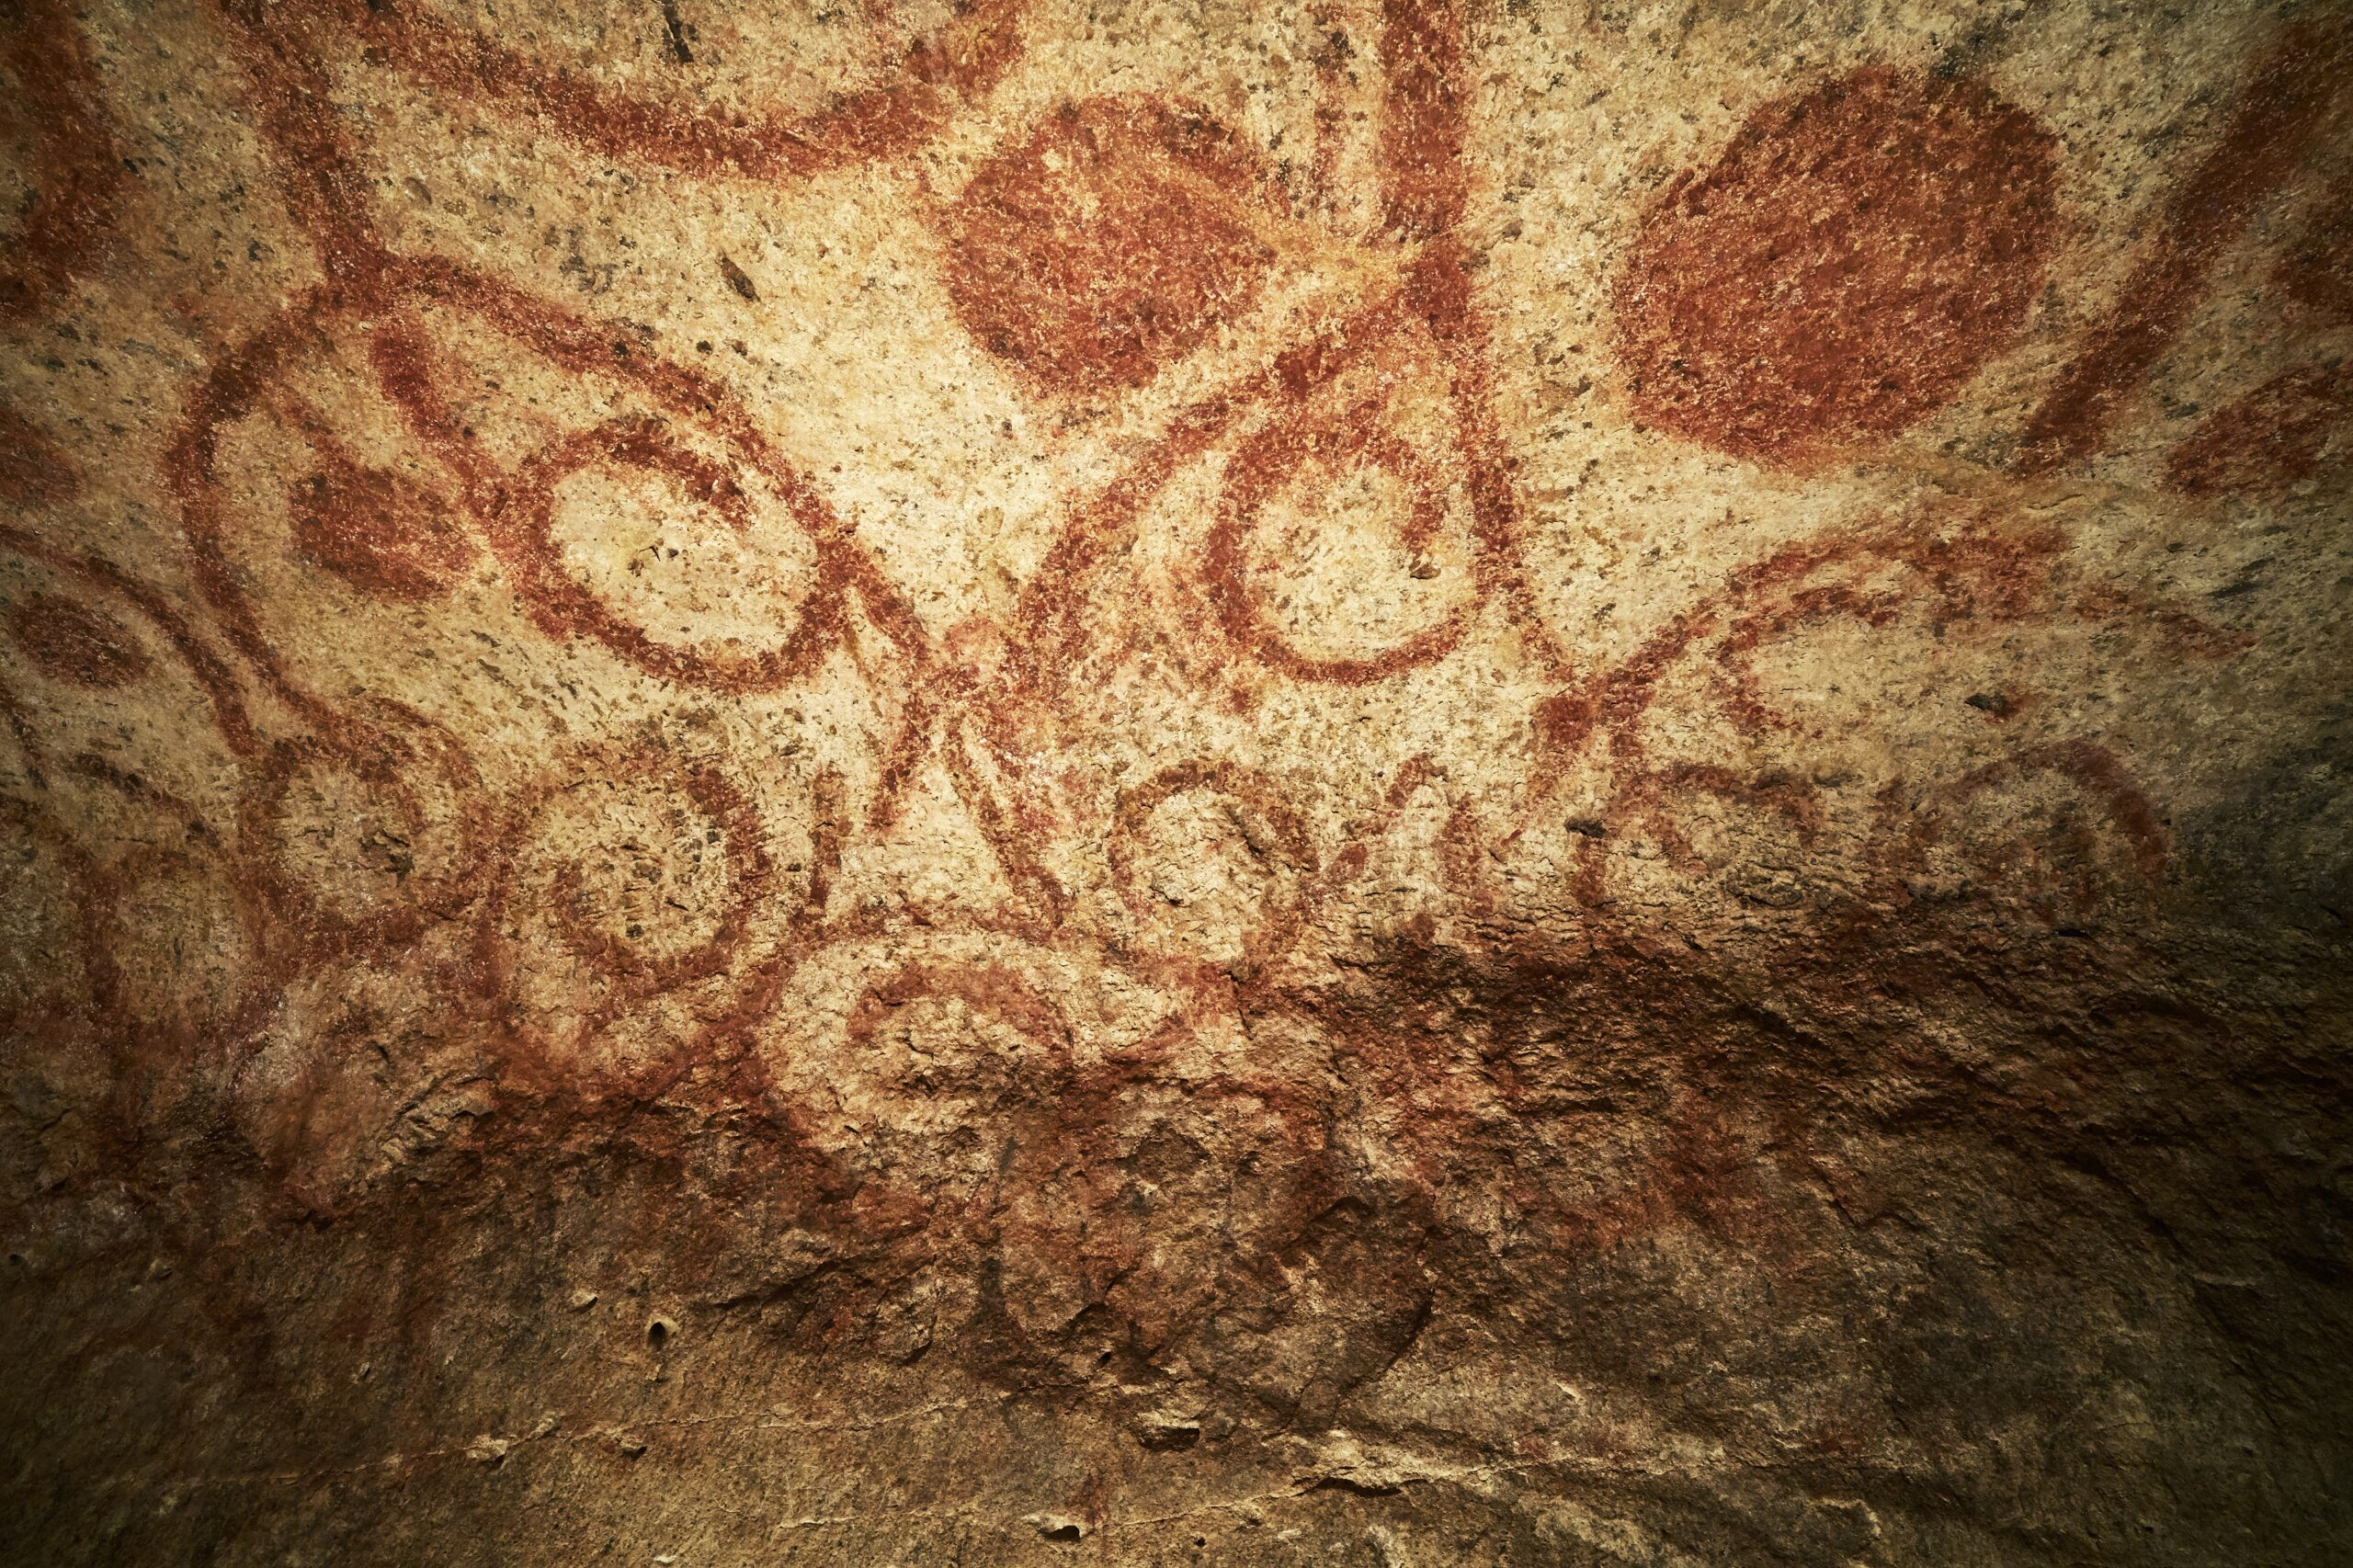 Best Things To Do in Malta | The mysterious red ochre painting of the Ħal Saflieni Hypogeum's Oracle room. Photo: Heritage Malta